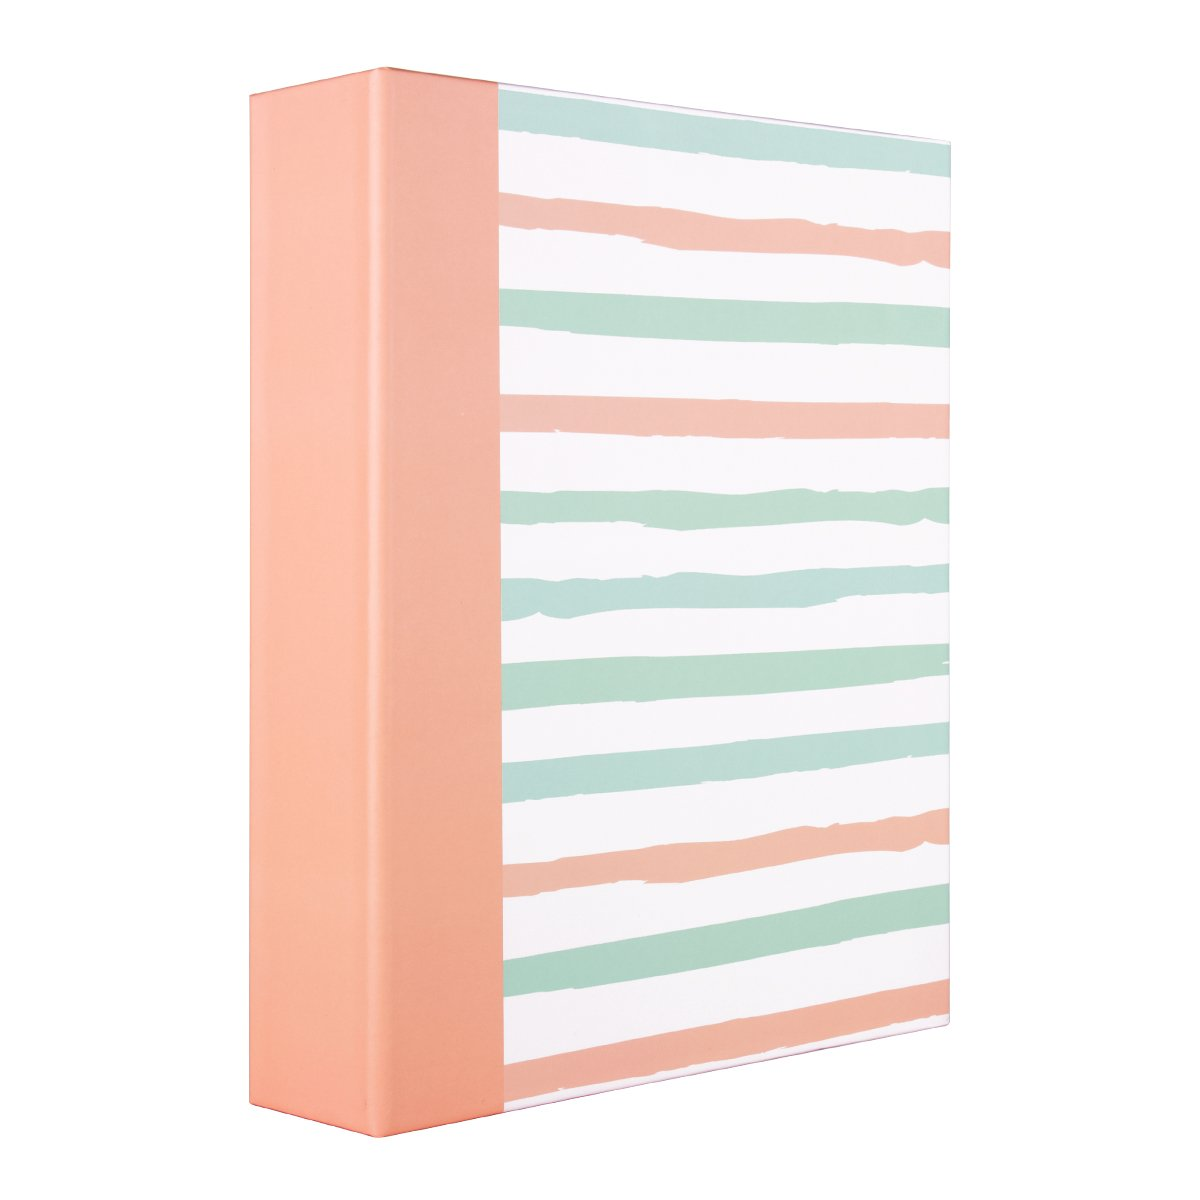 ERBAO Memo Photo Album 4x6 200 Photos, Fashion Stripes Design PA01